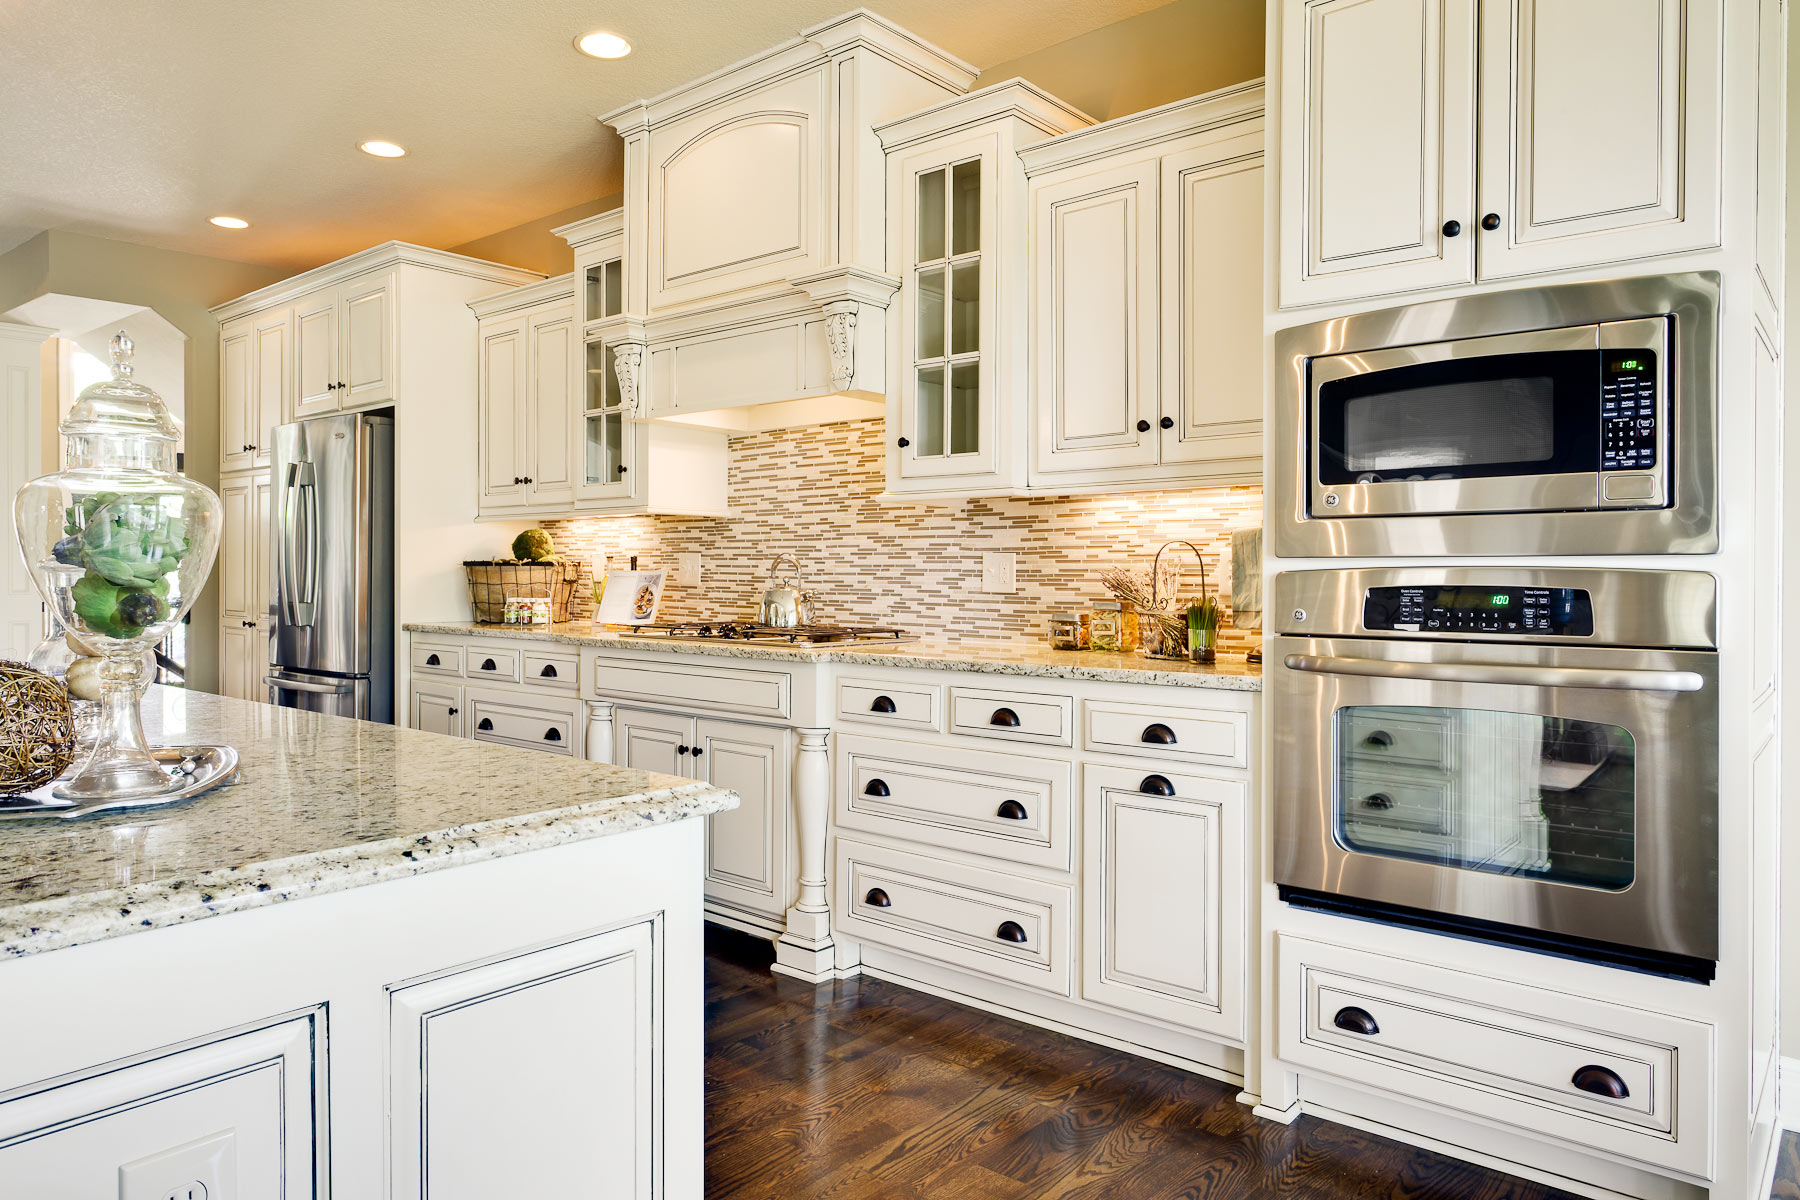 Agoura Hills Marble and Granite Inc – Kitchen Remodeling